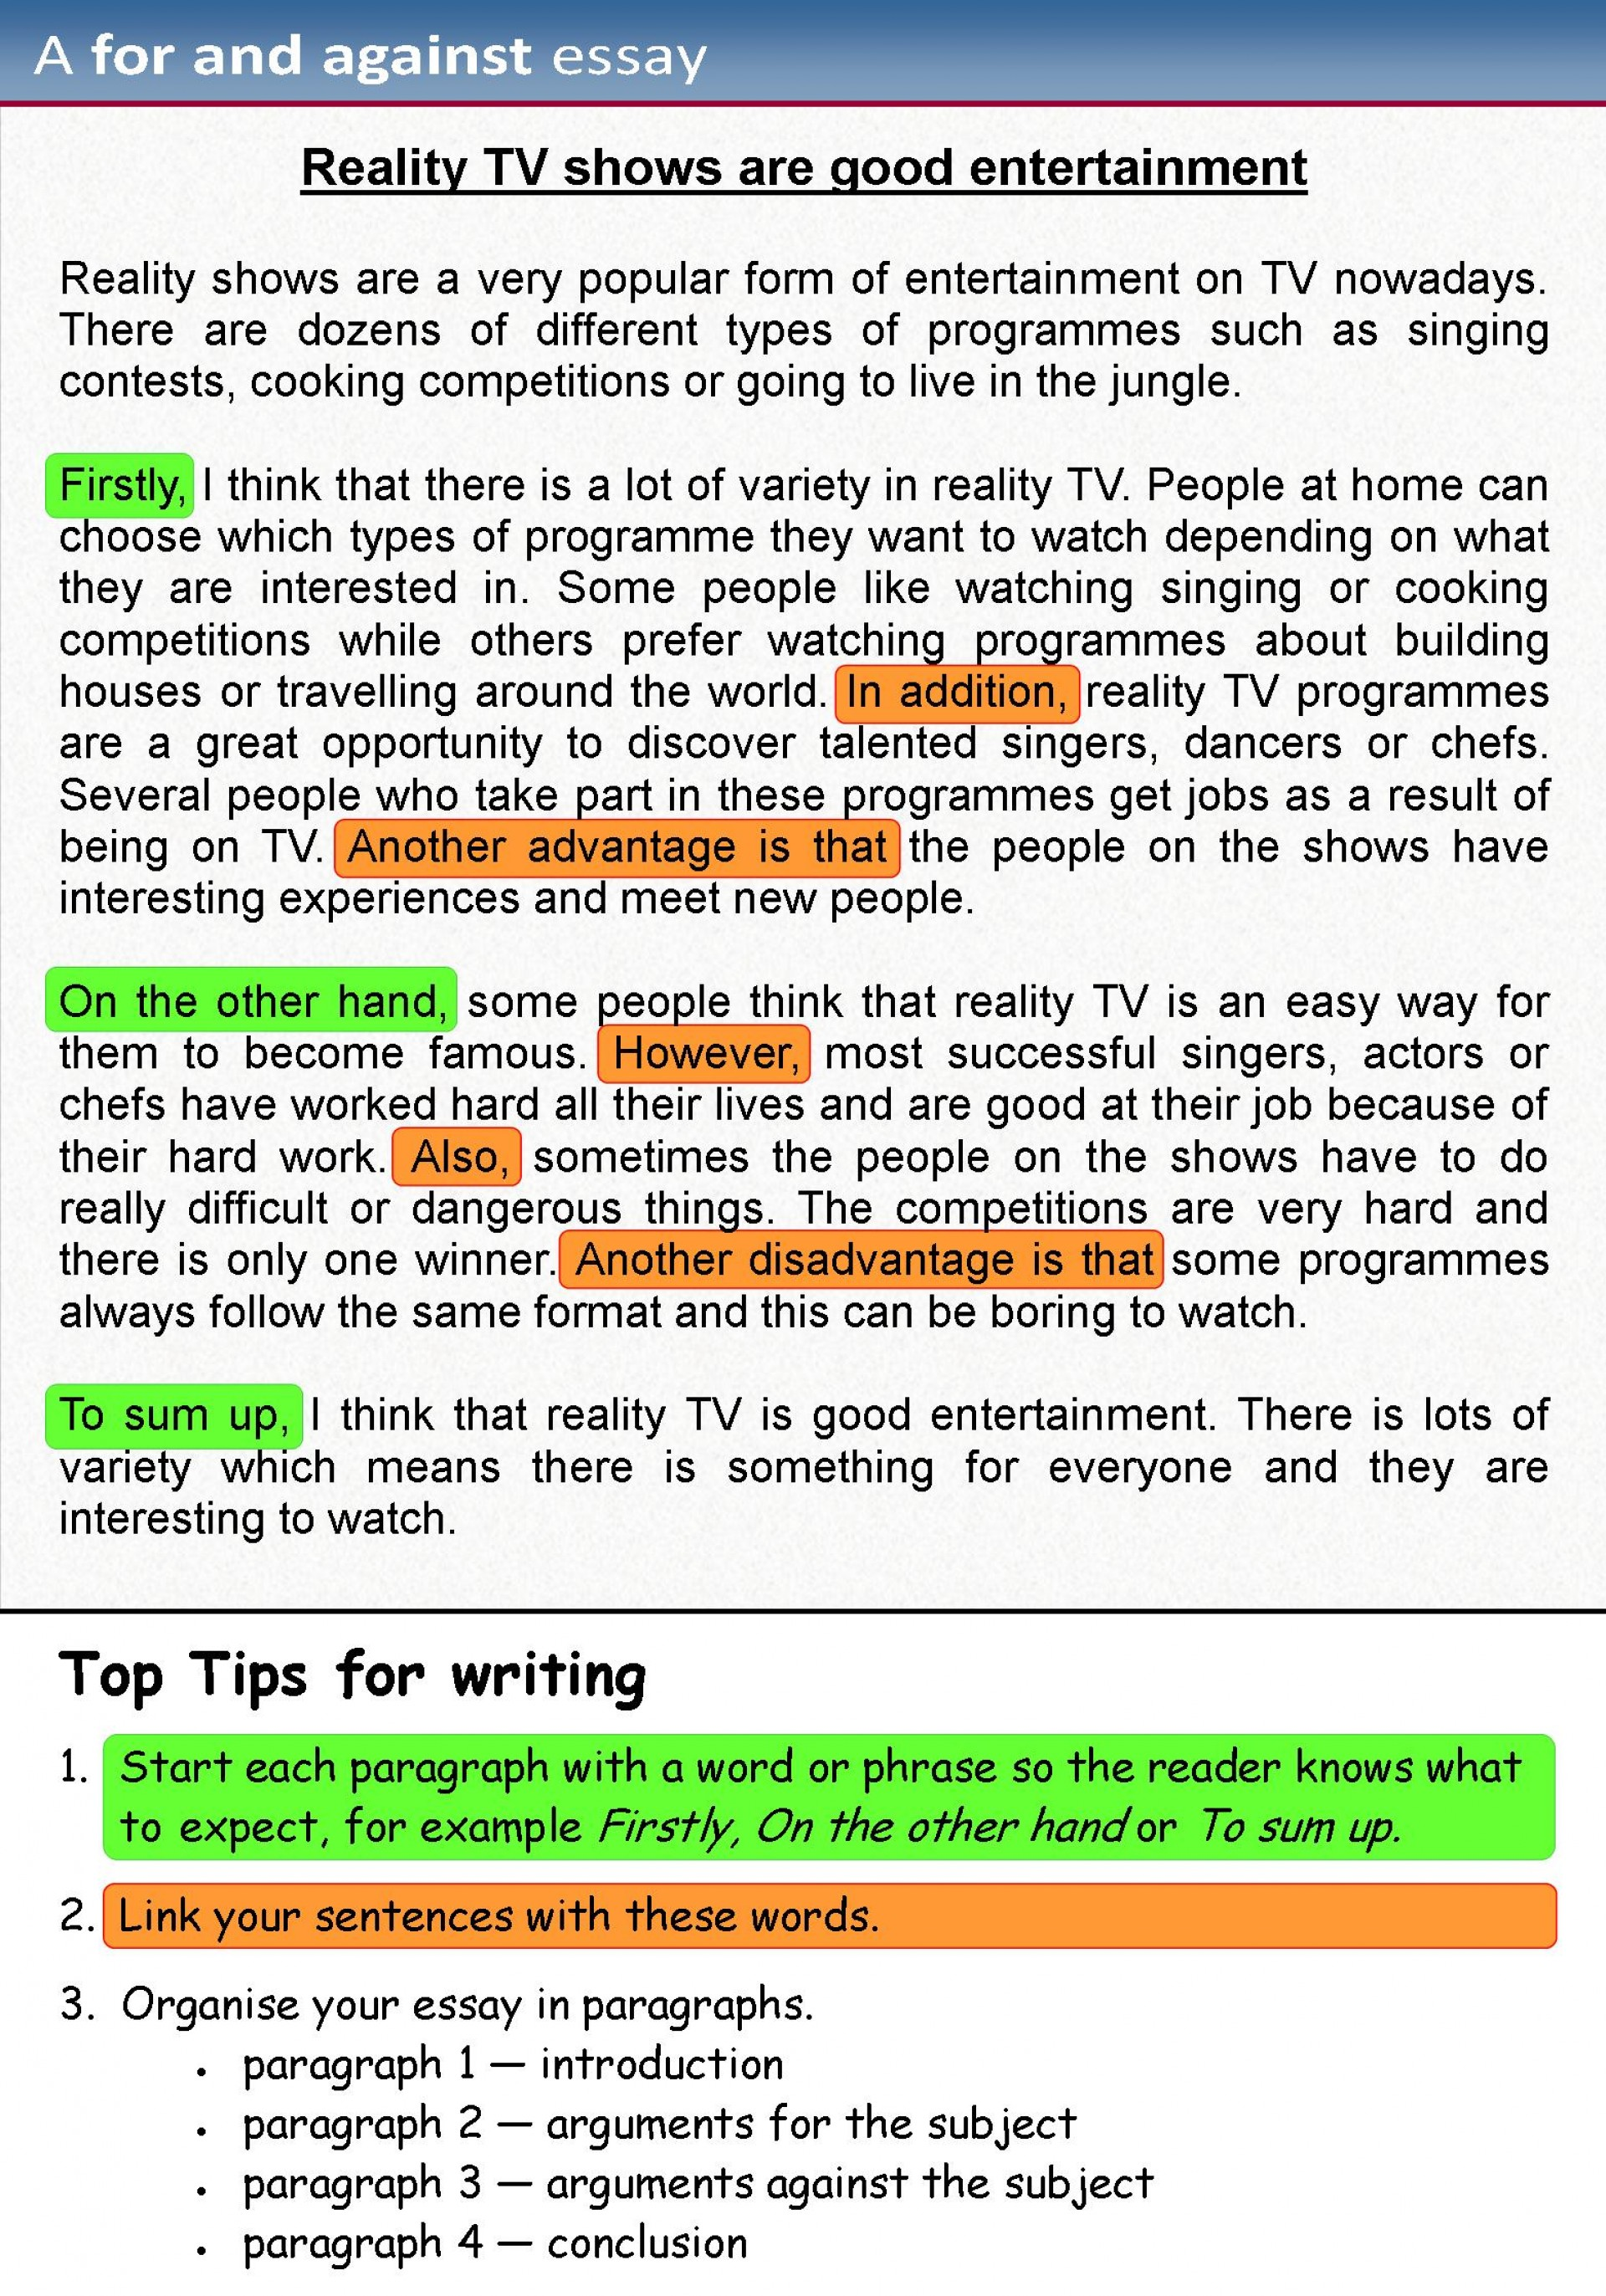 016 For Against Essay 1 Funny Essays Stupendous Topics Written By Students College 1920